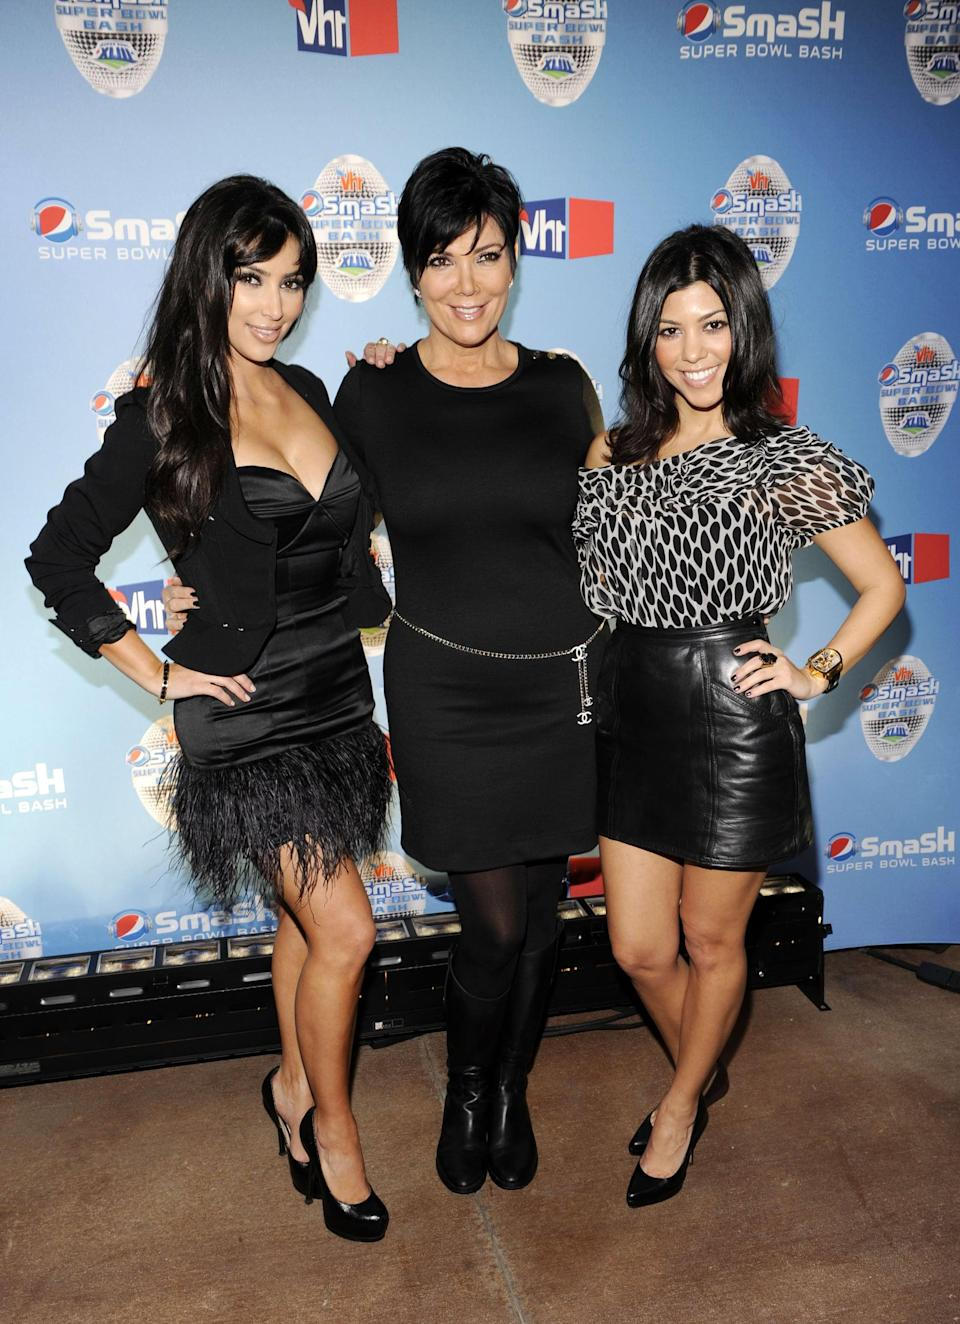 <p>In 2009, the Kardashians' wardrobe got a bit edgier. Think lots of black, leather, and body-hugging skirts.</p>